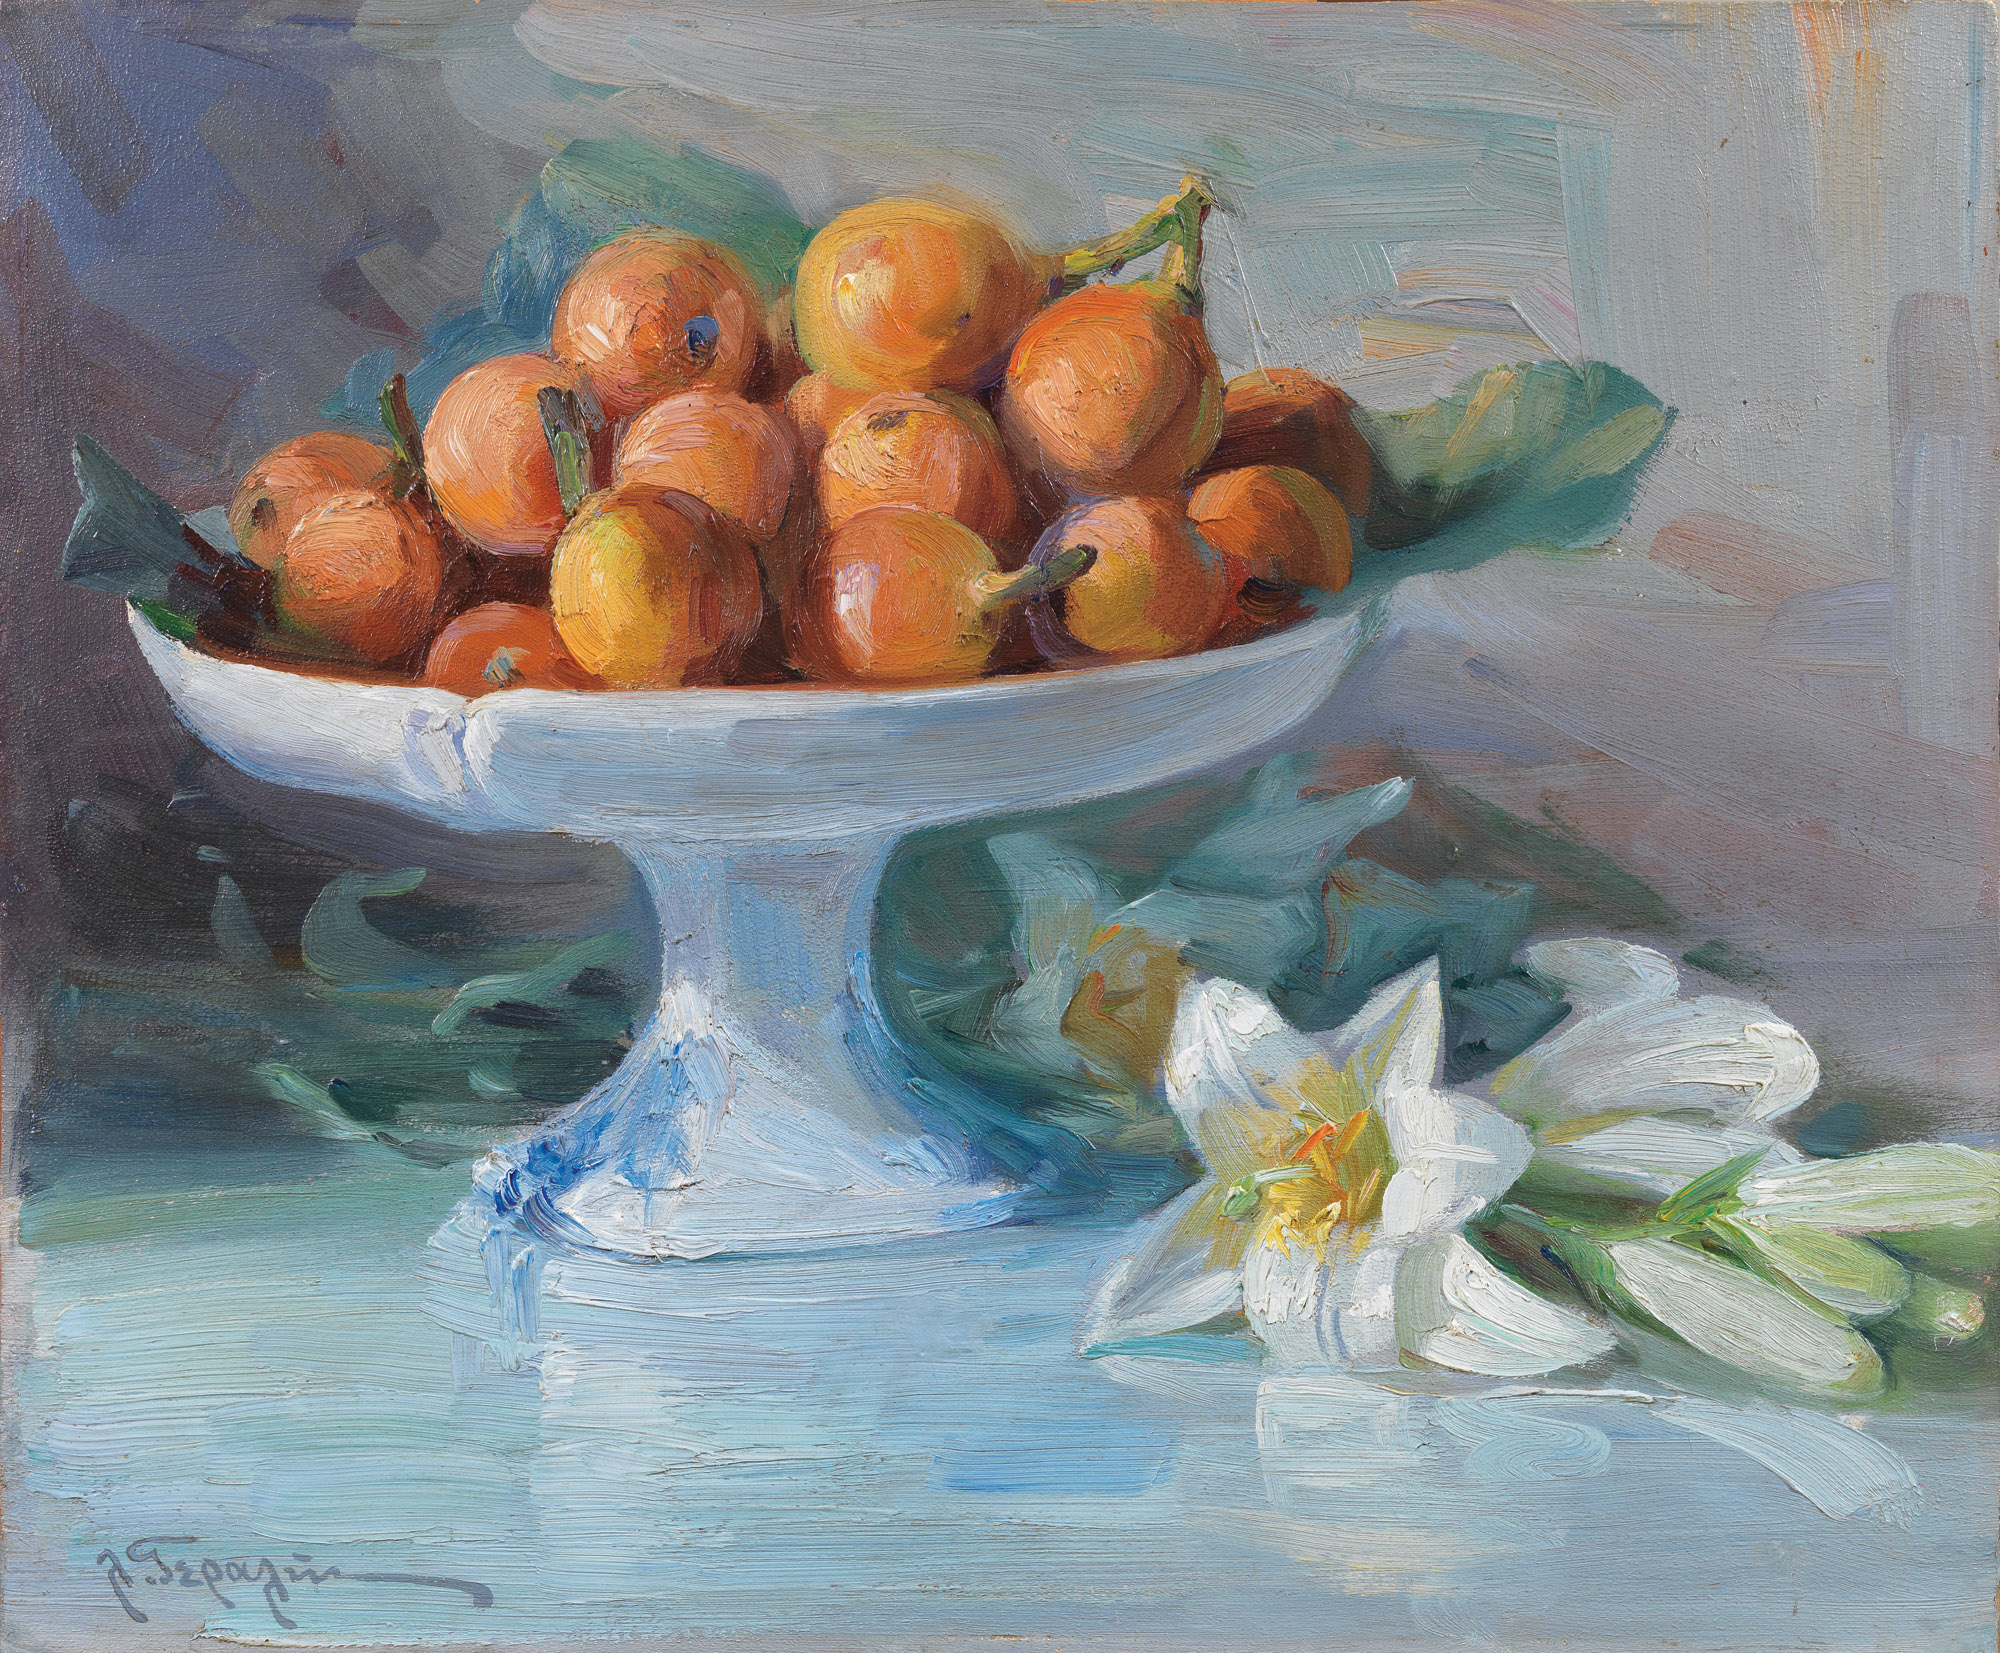 Lucas Geralis - Still life with pears